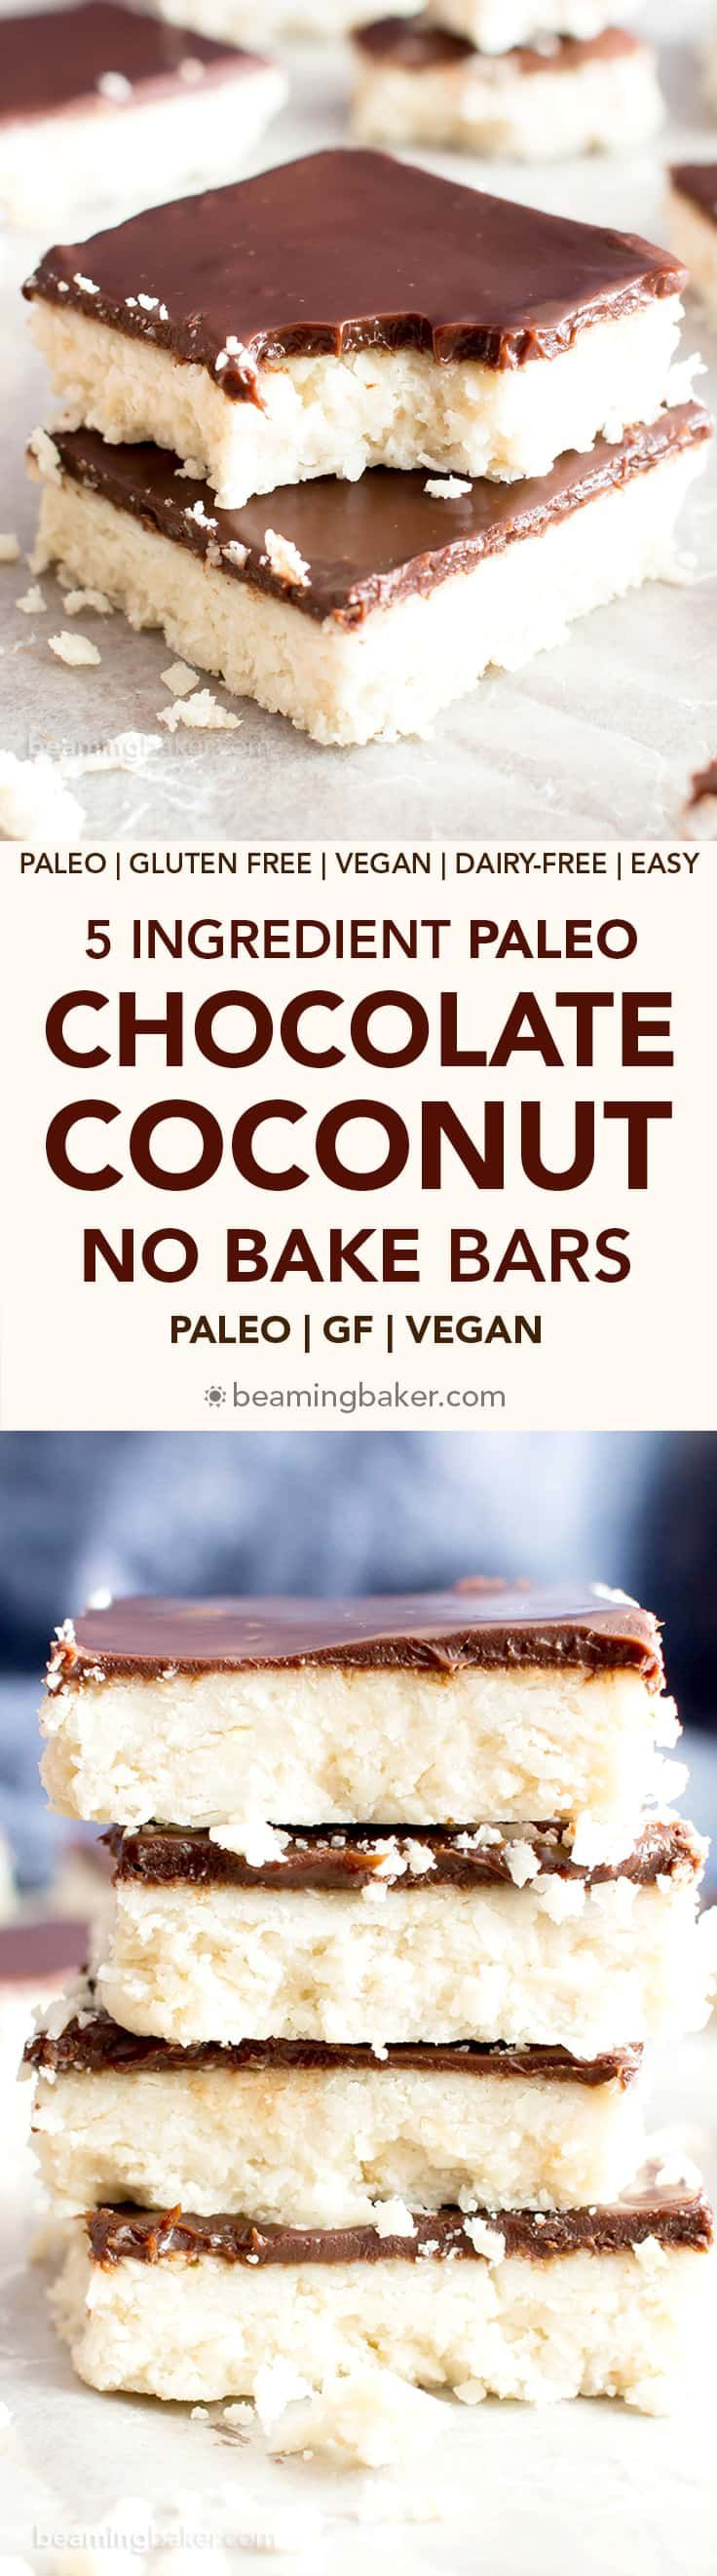 5 Ingredient No Bake Chocolate Coconut Bars (V, GF): A decadent 'n easy dessert recipe for thick, indulgent coconut bars enrobed in a velvety layer of rich chocolate ganache. Healthy Dessert Recipe. #Vegan #GlutenFree #Paleo#Healthy #Desserts#DairyFree | Recipe on BeamingBaker.com